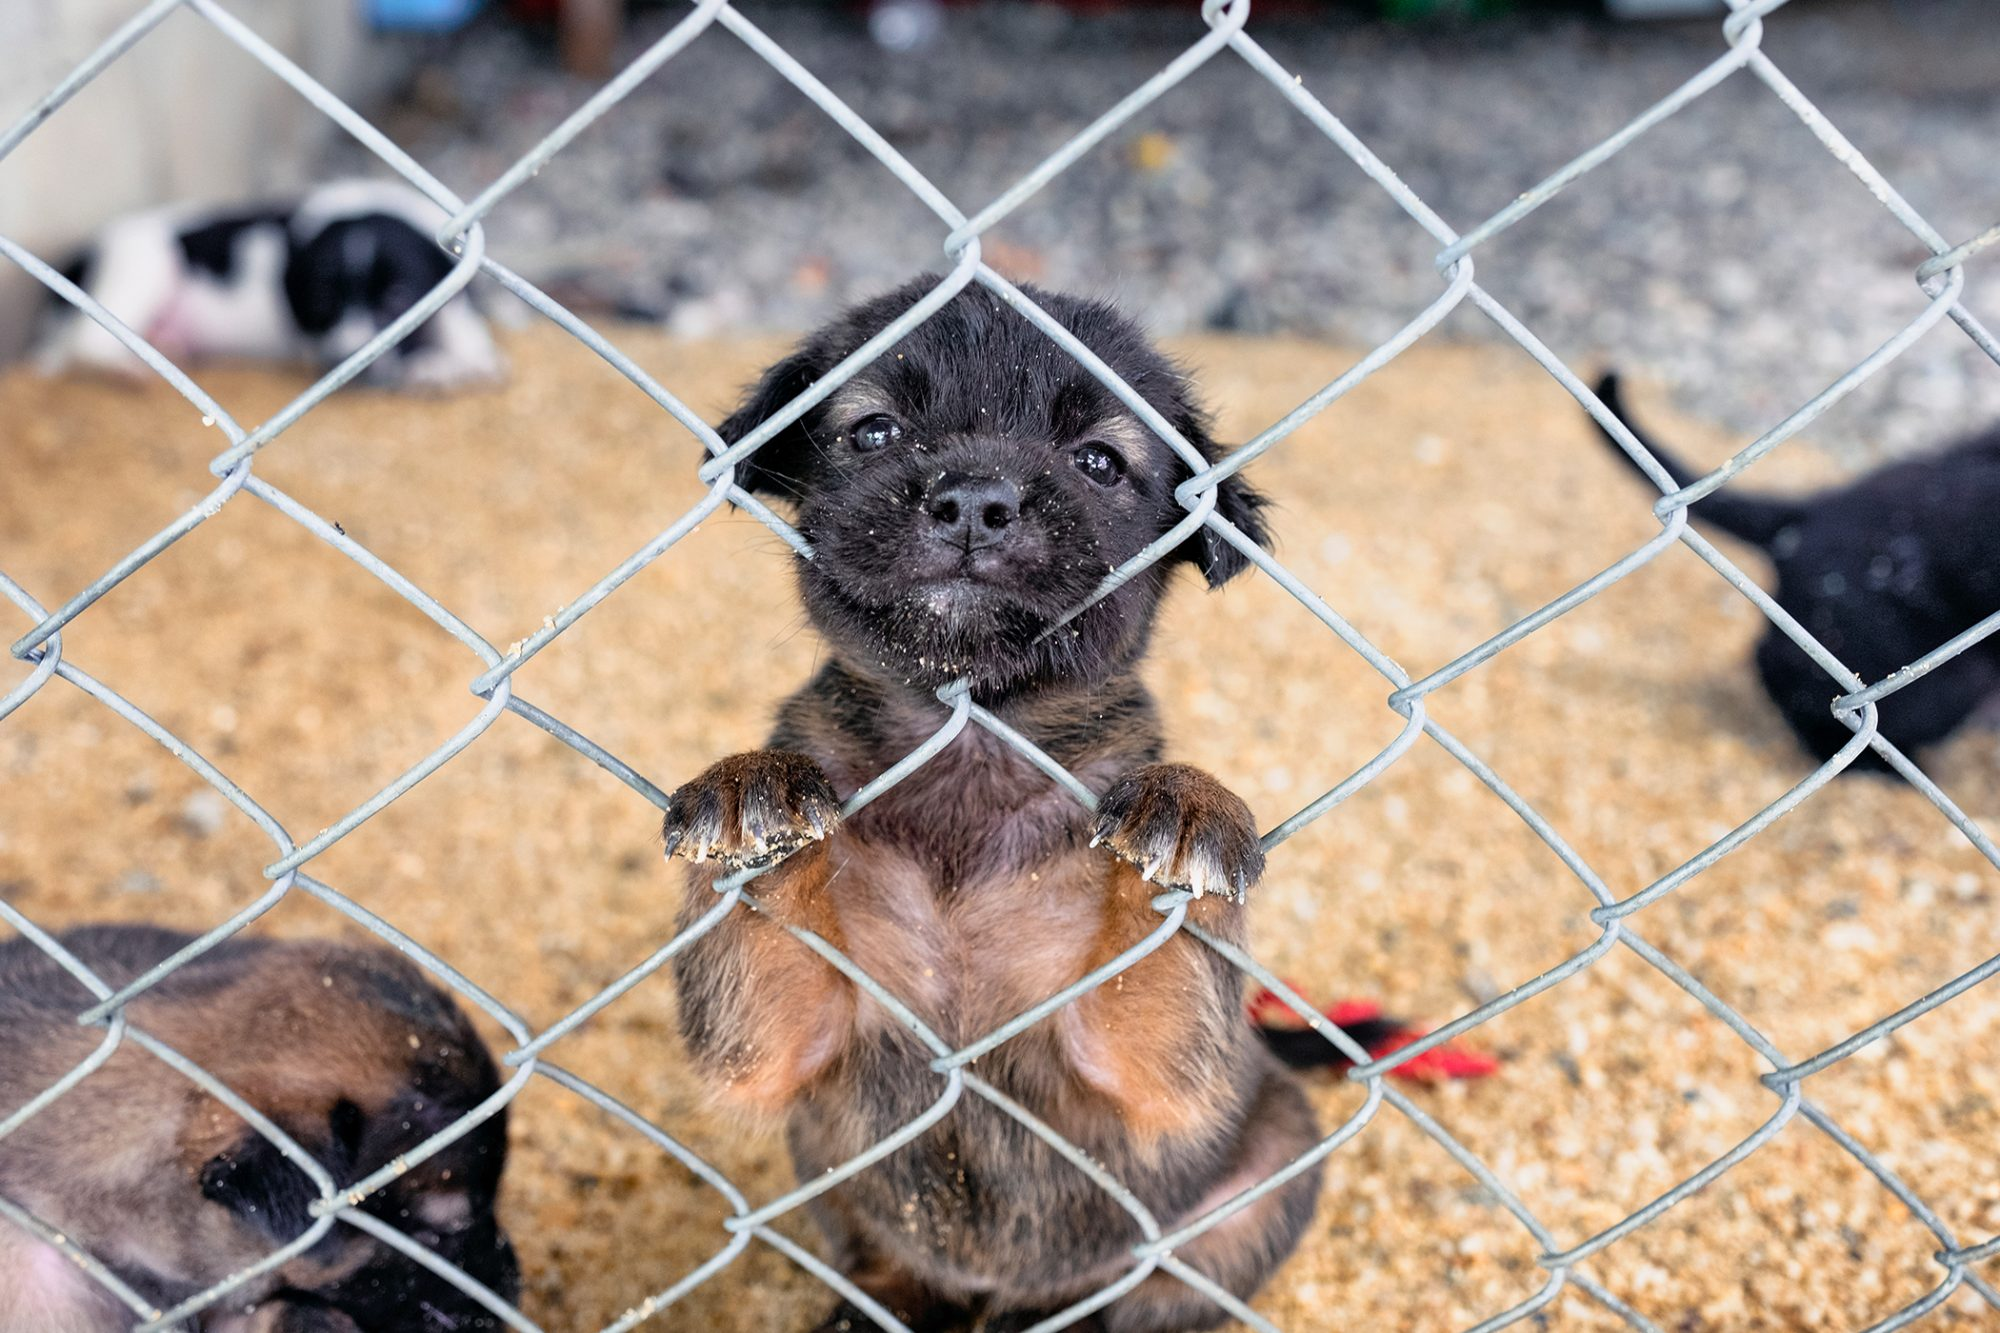 puppy puts paws up onto chain-link cage